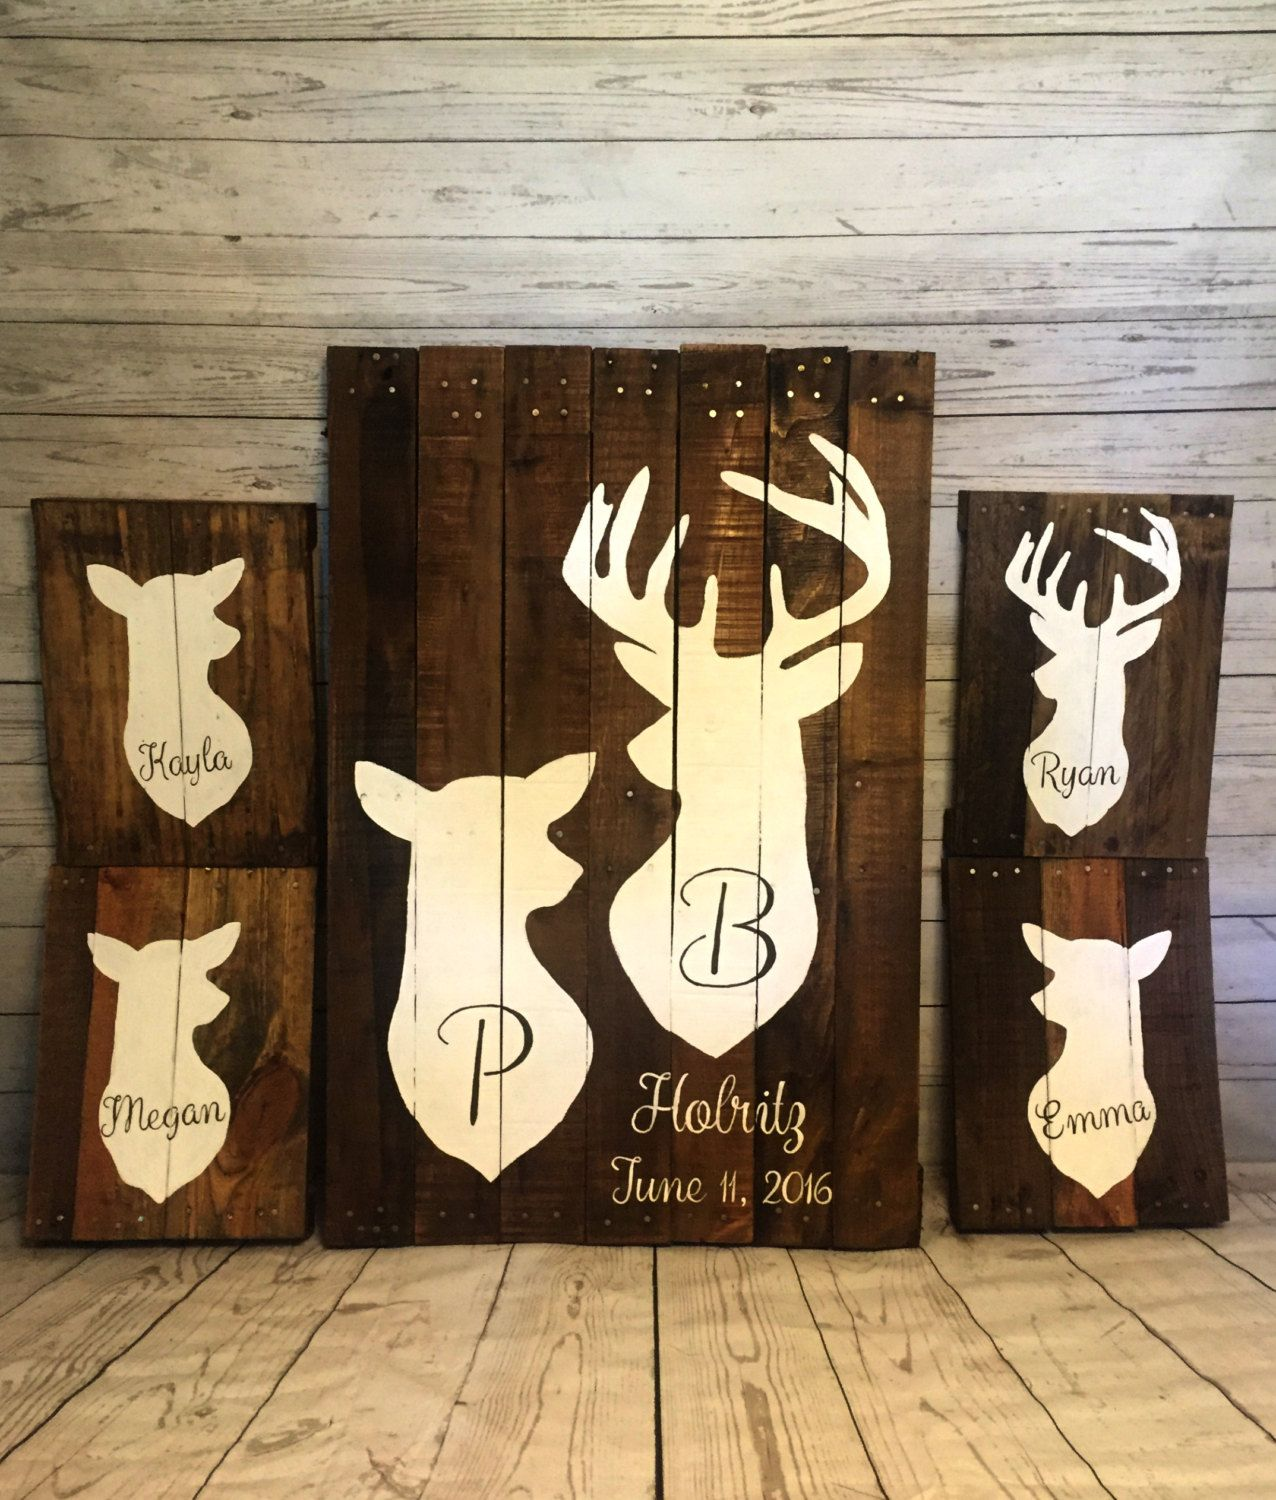 Wooden Texas Recycled Pallet Sign By Rusticrestyle On Etsy: Family Deer Sign- Recycled Pallet Deer Sign- Reclaimed